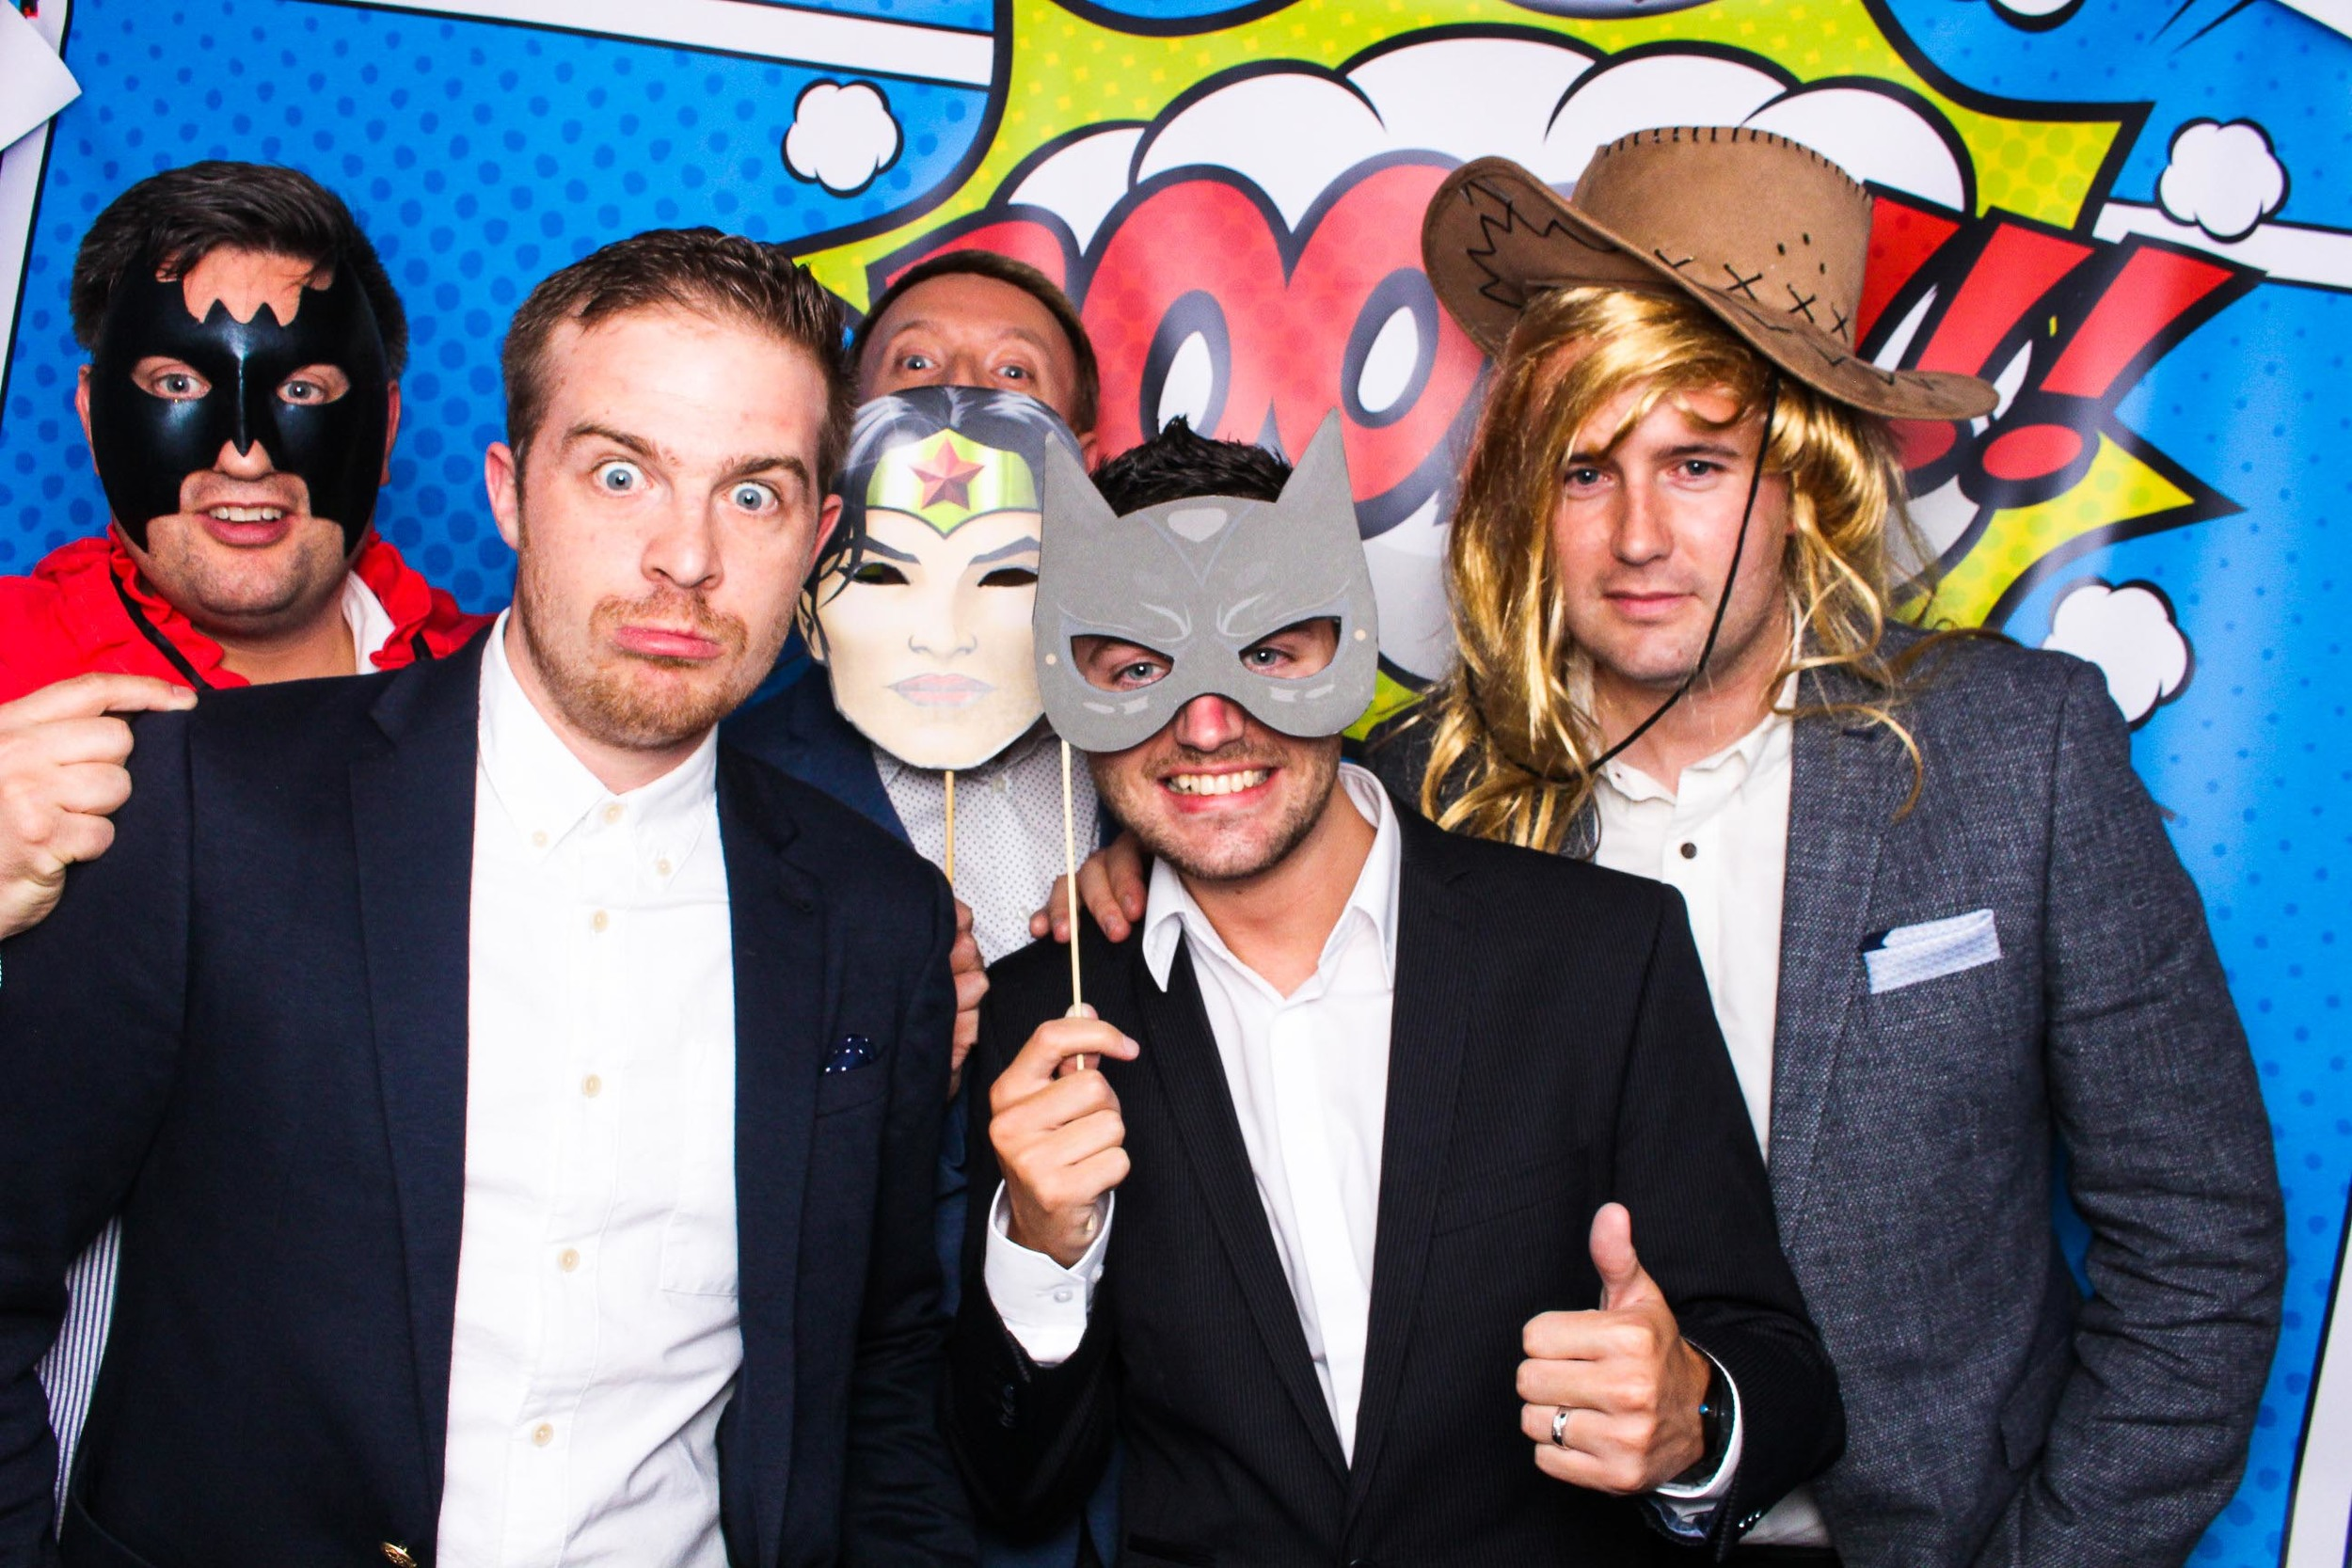 Fotoauto Photo Booth Hire - Shop Direct-202.jpg